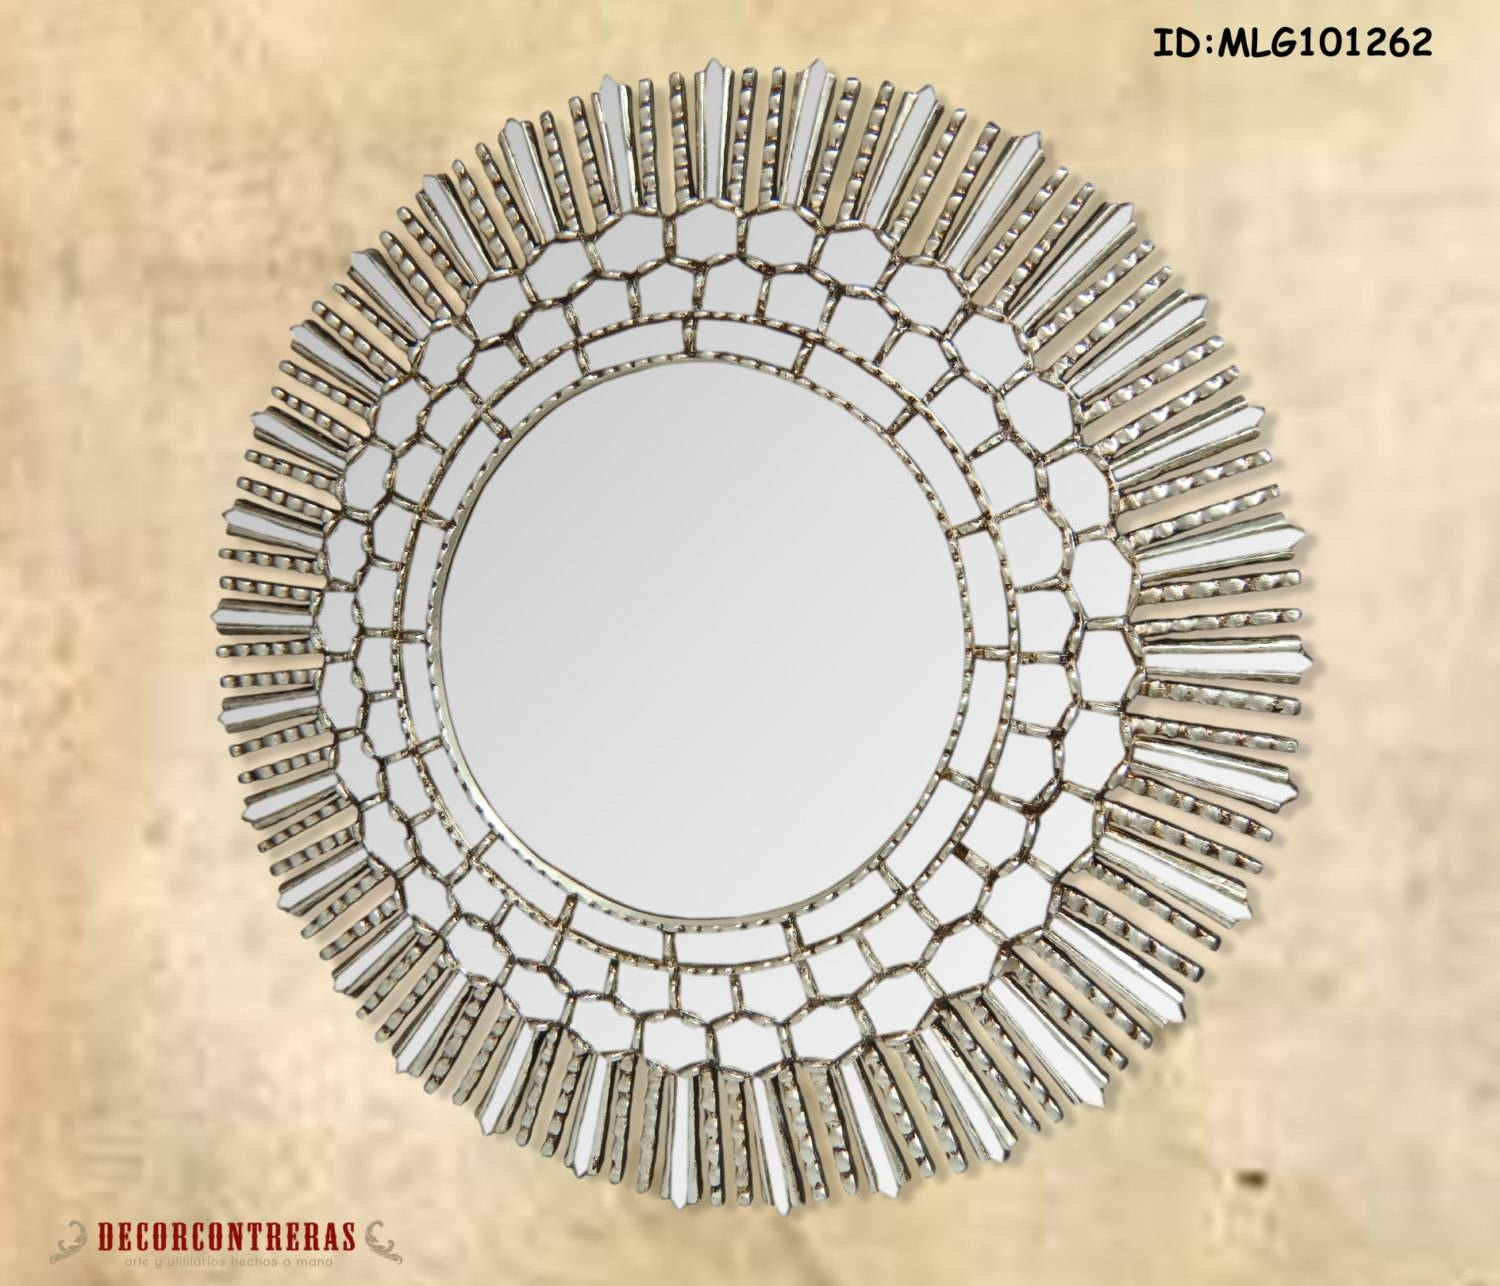 Large Round Decorative Wall Mirror Cuzco Style 31.5H with regard to Large Round Silver Mirrors (Image 5 of 15)